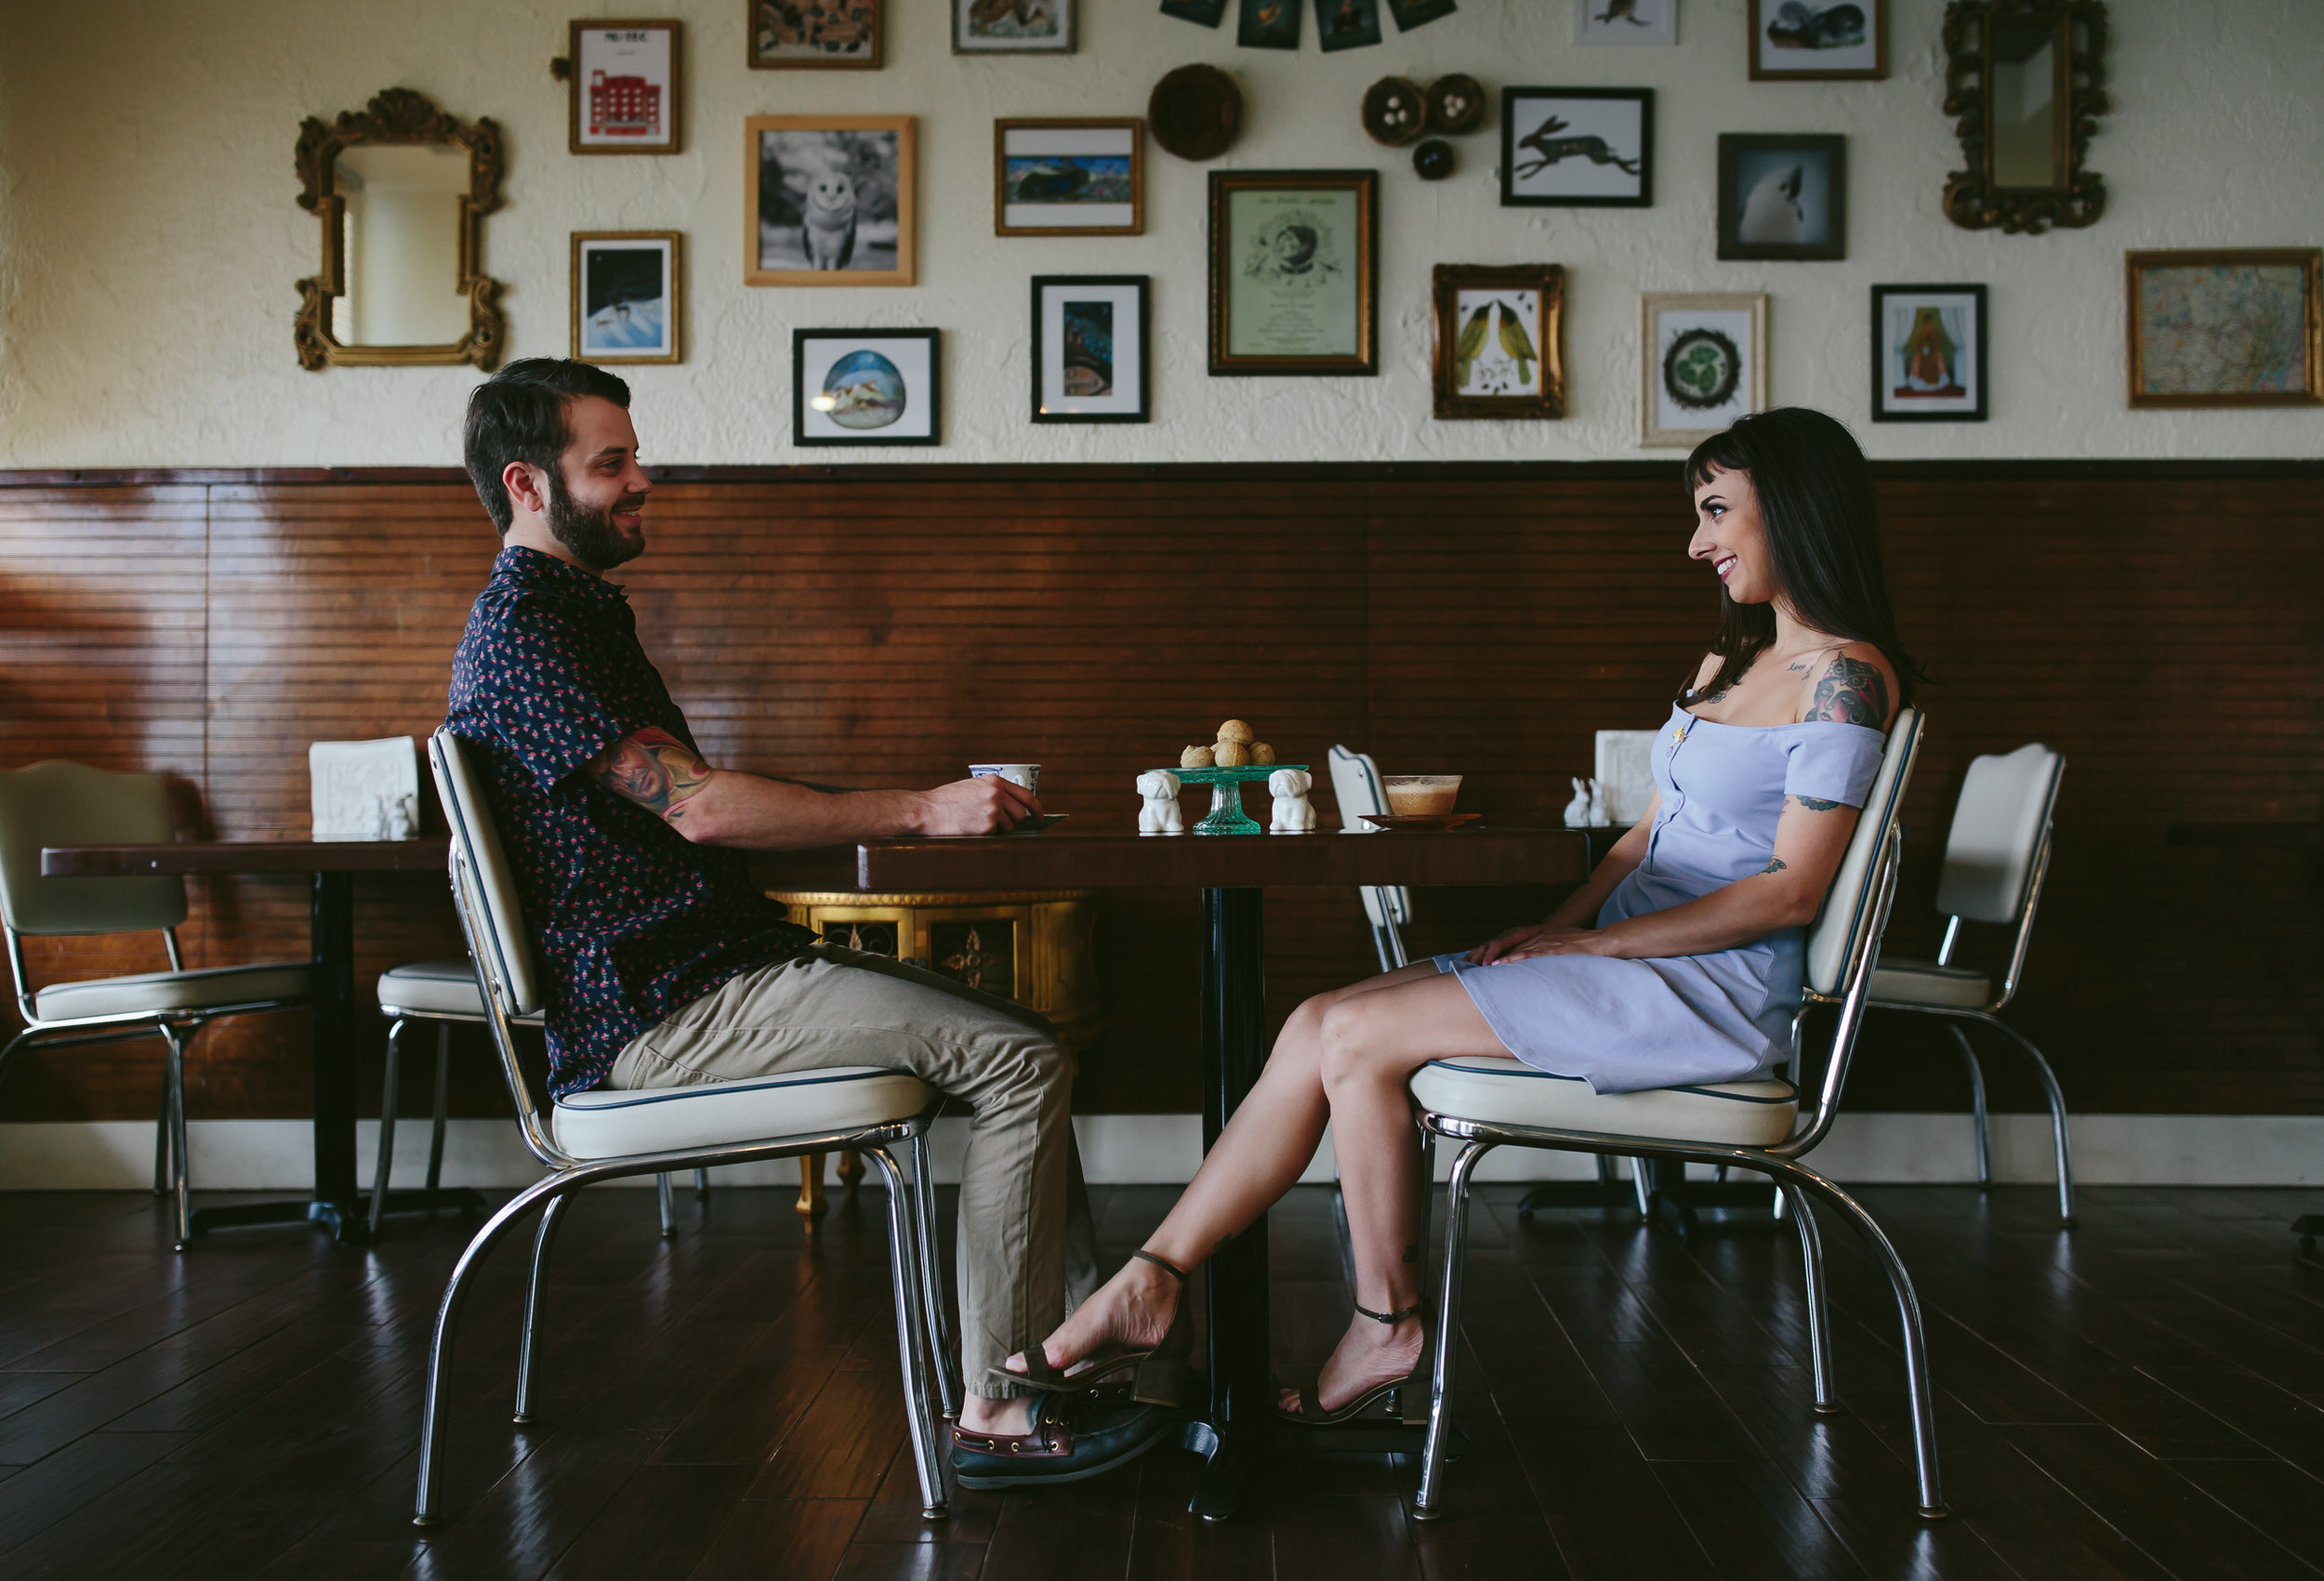 vegan-engagement-session-tiny-house-photo-cafe.jpg